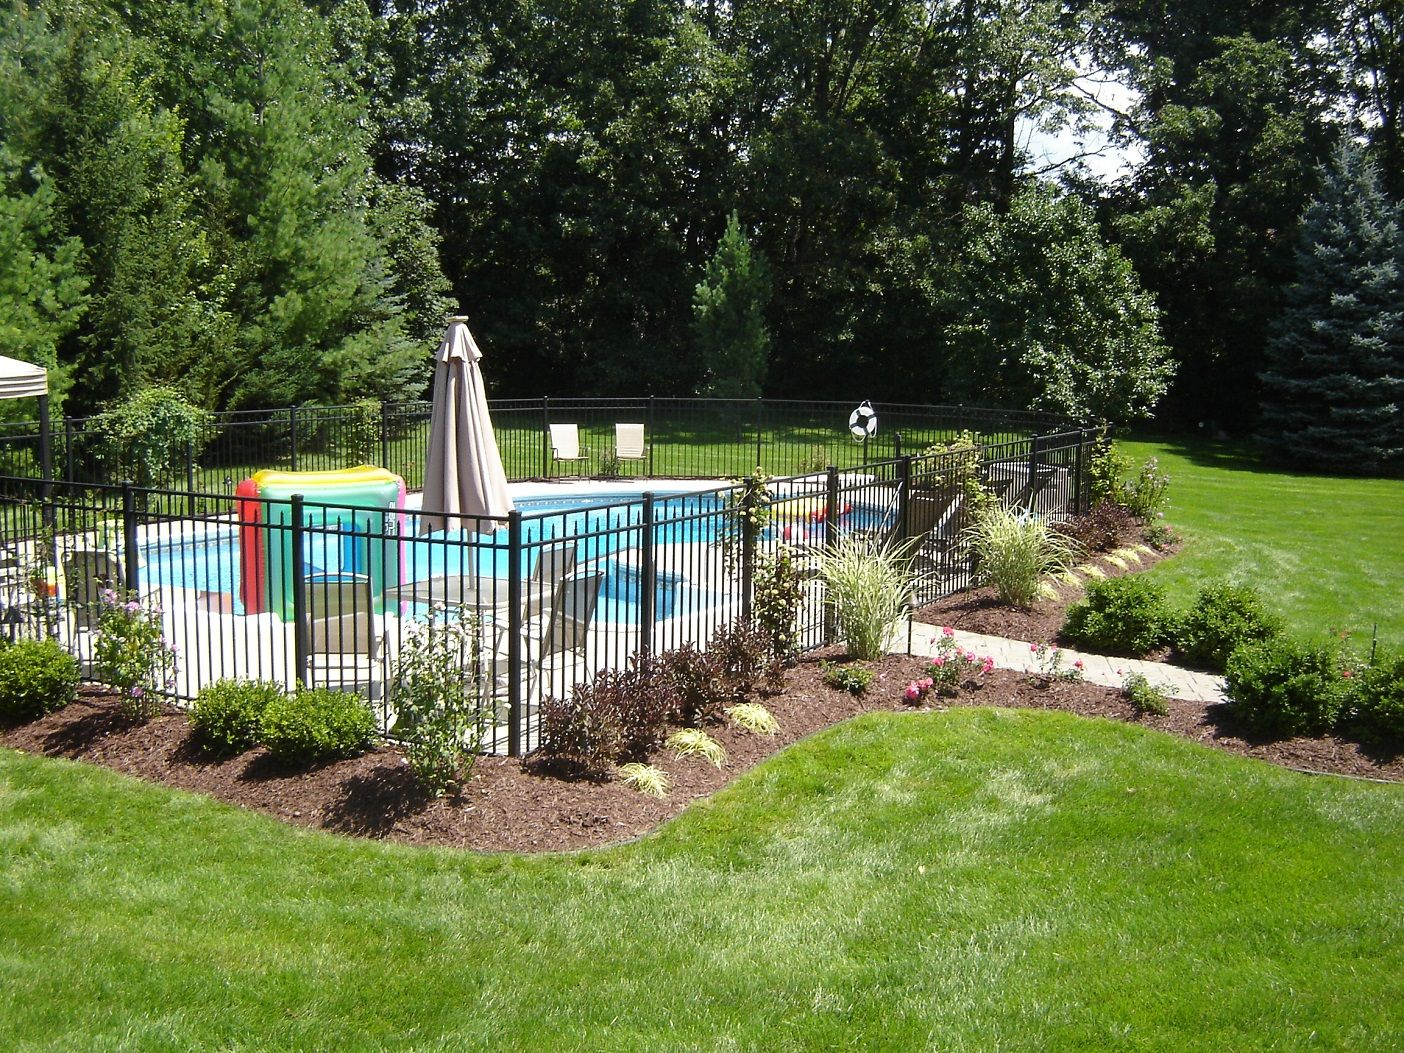 Exterior Black Iron Fences Around Pool Landscaping Ideas In Some Brick Wall Design Inground Pool Landscaping Landscaping Around Pool Backyard Pool Landscaping Large backyard landscaping ideas with pool